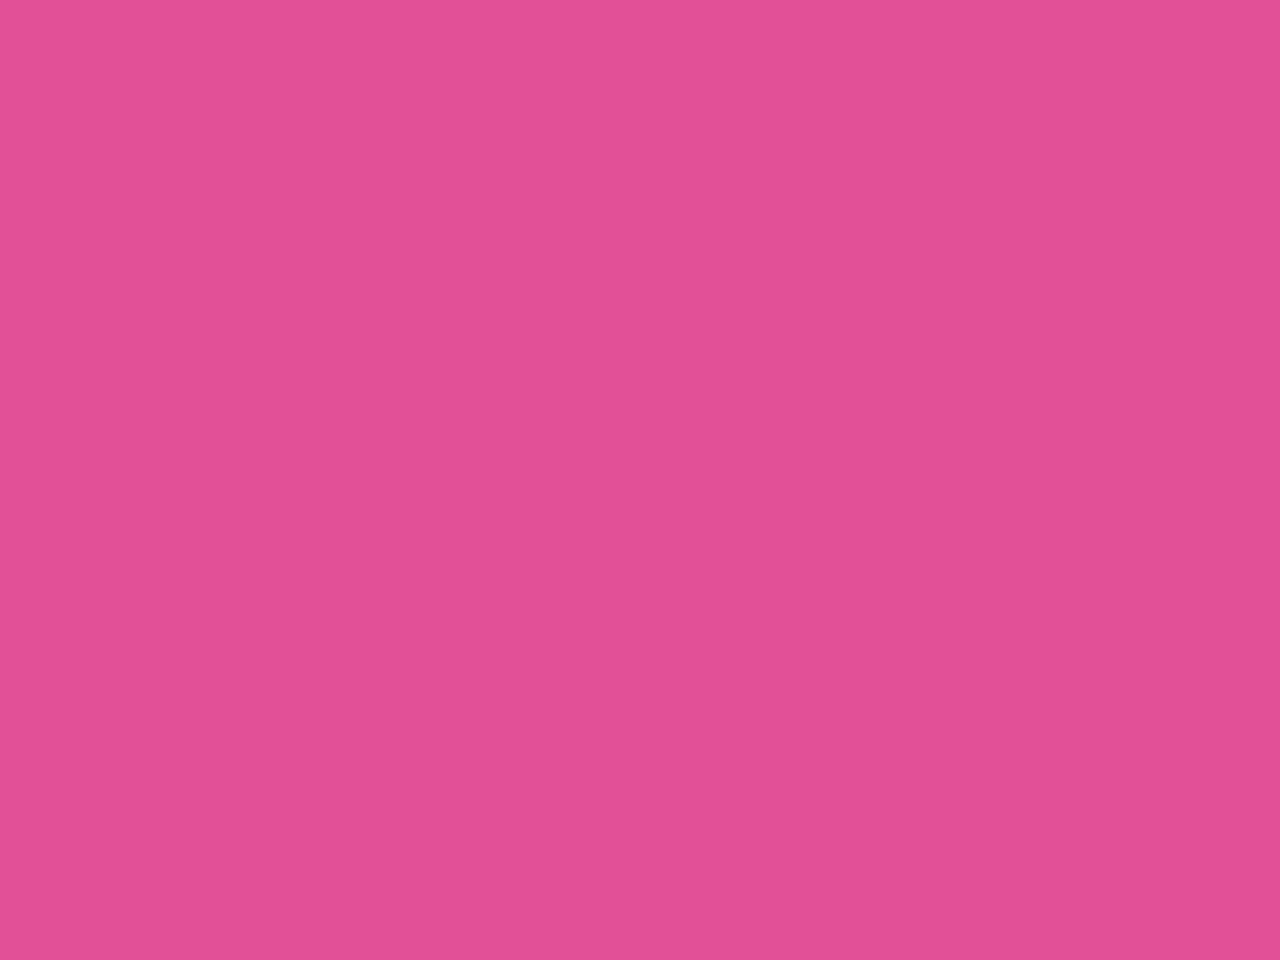 1280x960 Raspberry Pink Solid Color Background